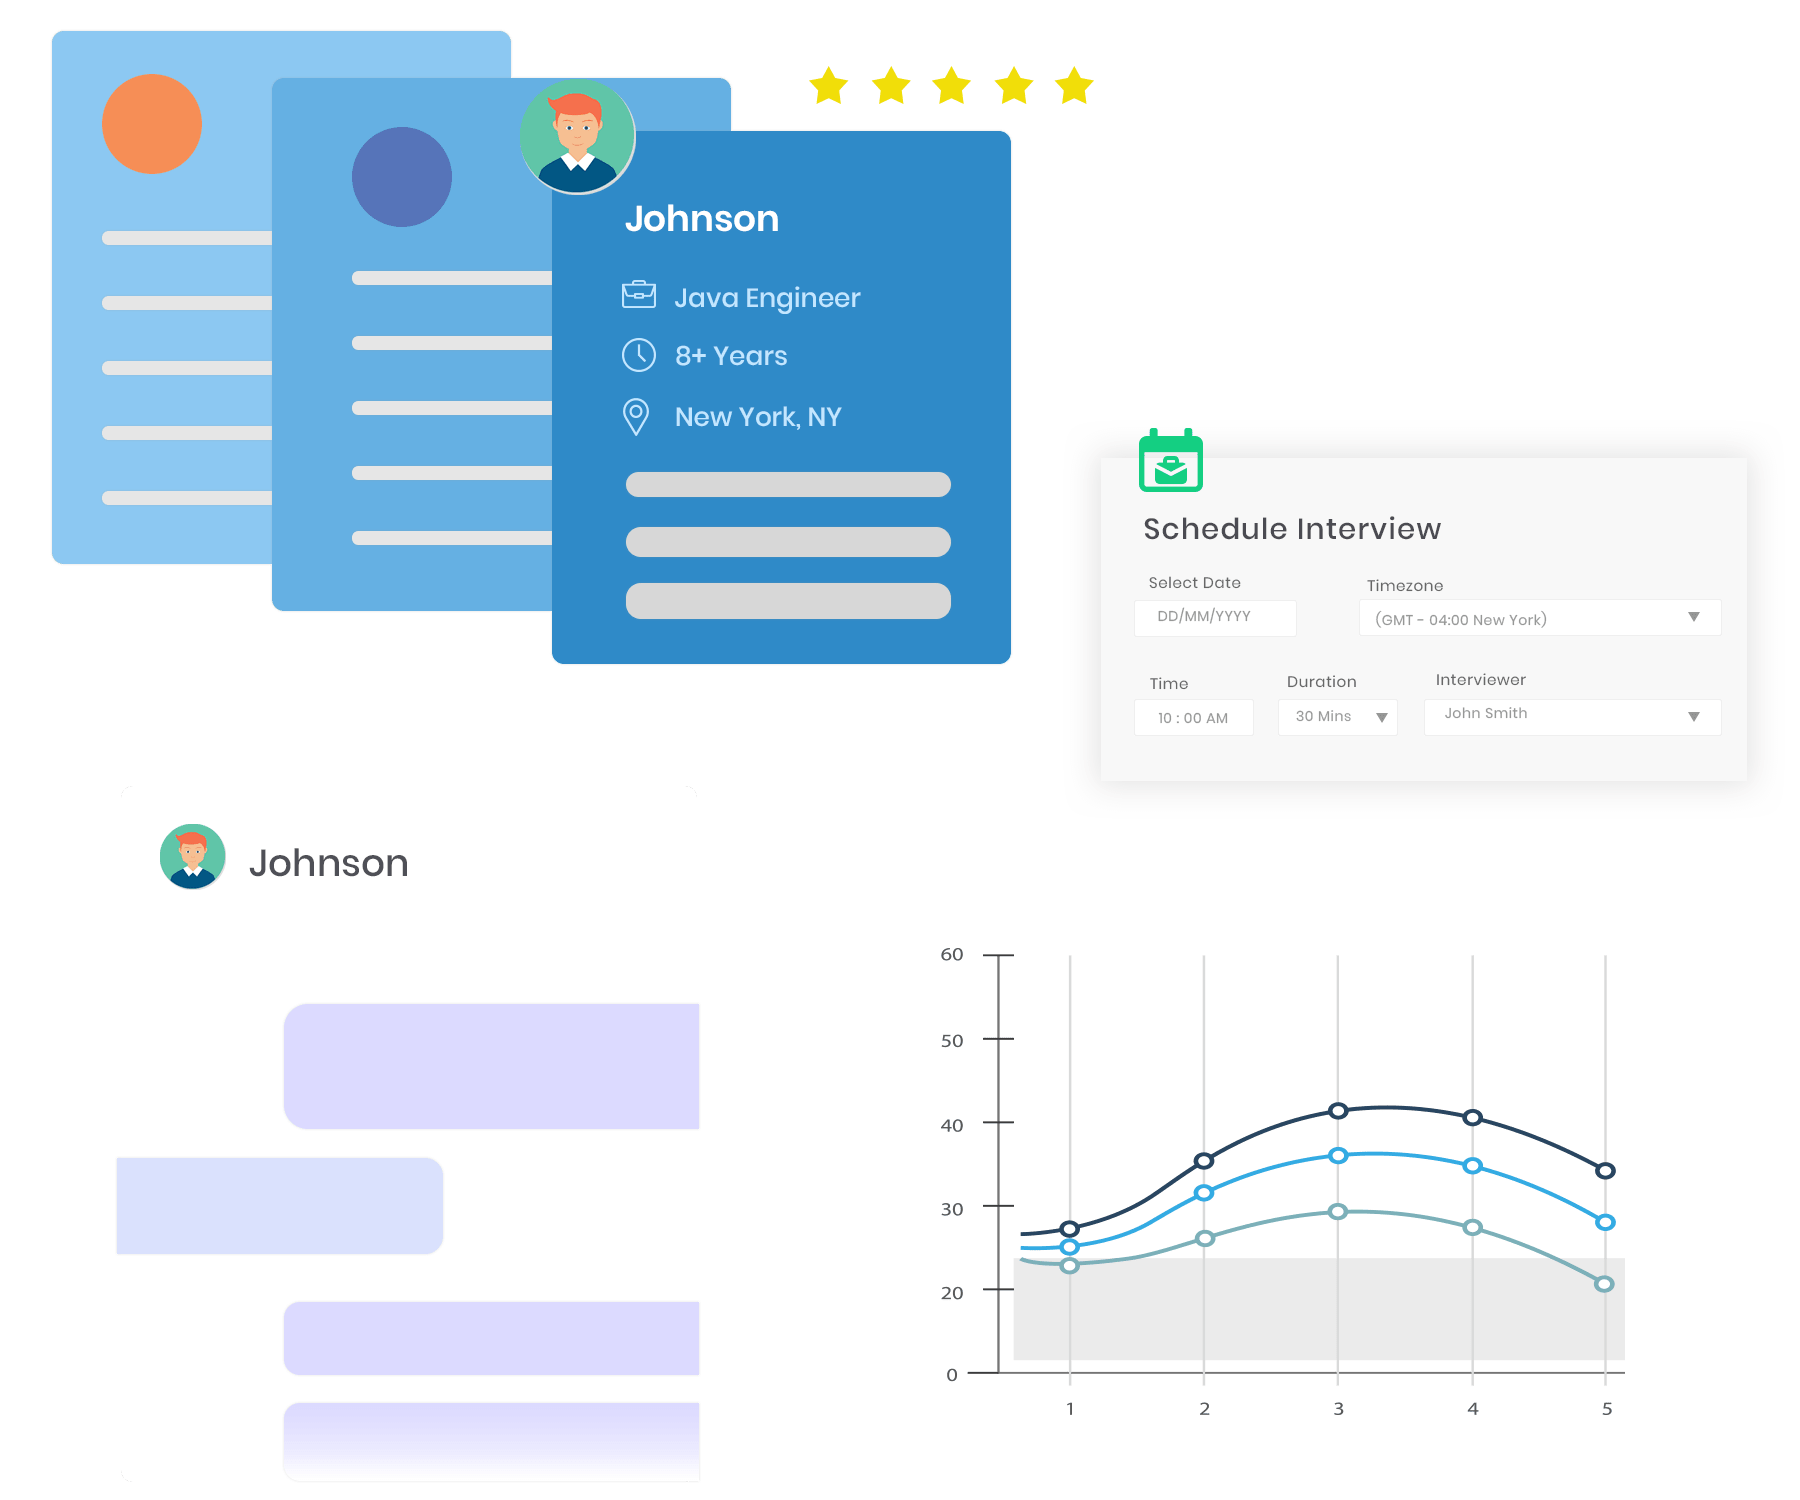 Candidate experience interface of rytfit.ai recruiting platform